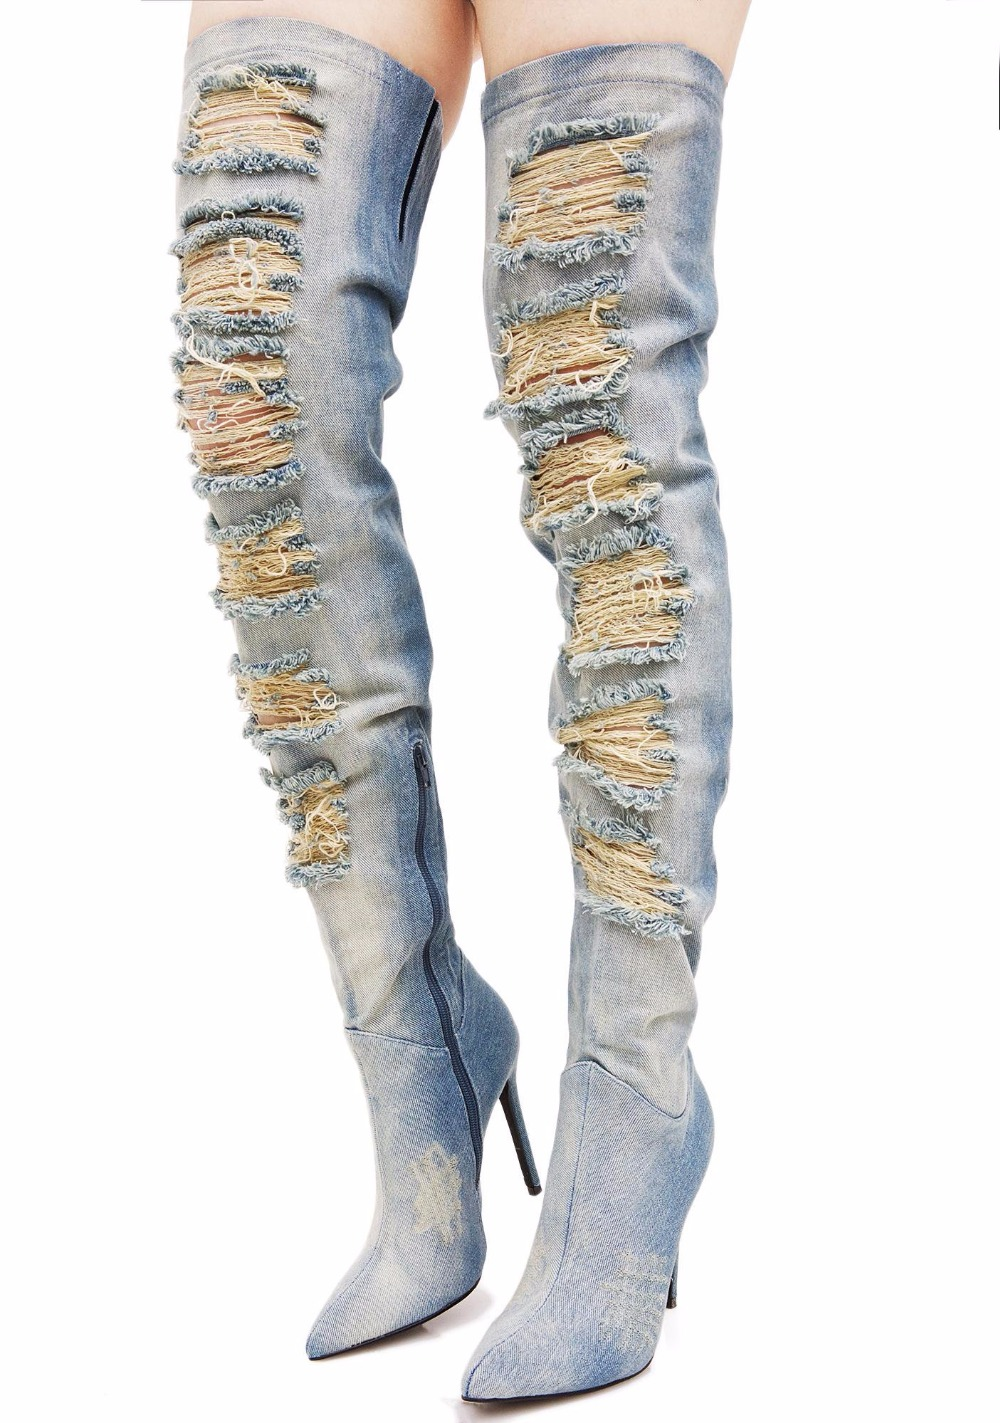 Hot Selling Denim Thigh-High Boots Ripped Peep Toe Pleated Blue Jeans Over the Knee Boot Size Zipper Gladiator Sandal Boot hot boots women sexy black thigh high boots peep toe soft leather back zip high heels over the knee boots gladiator sandal boots